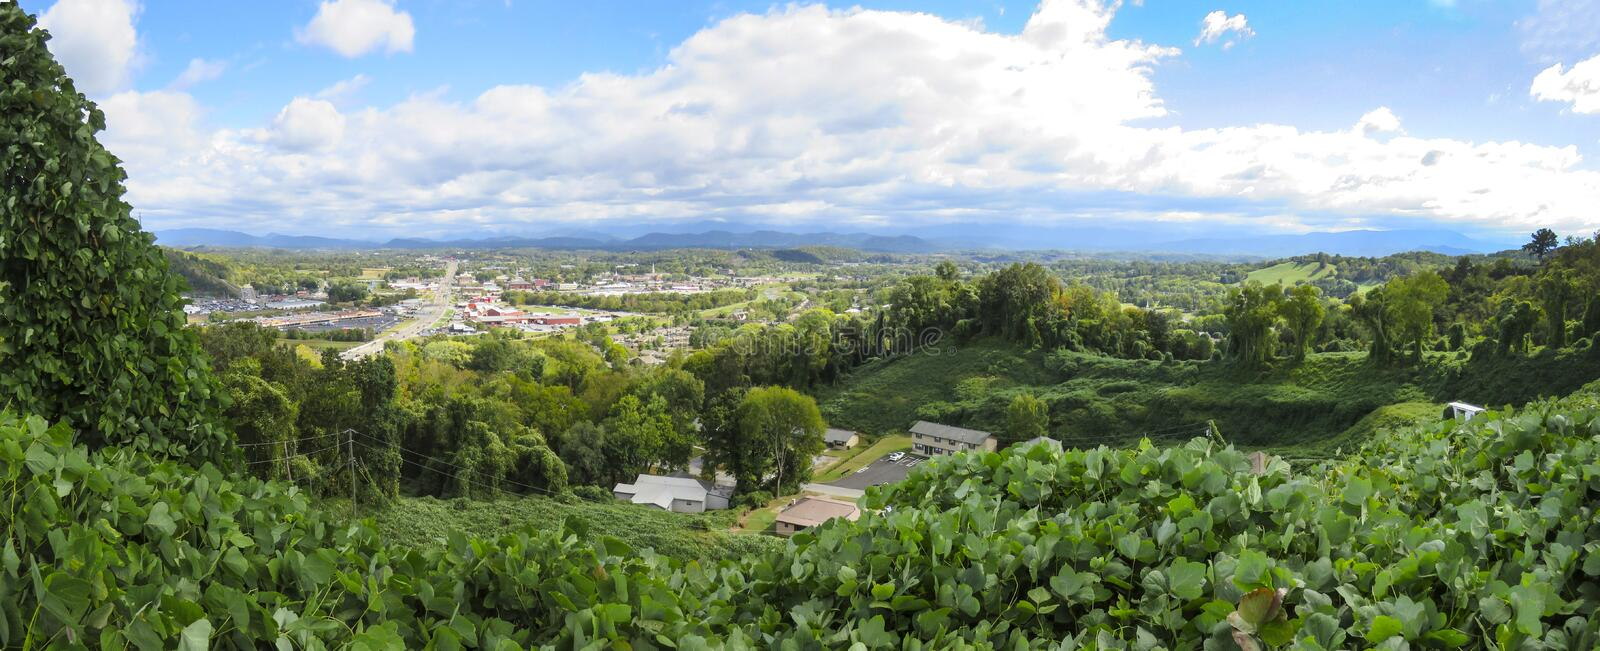 Hilltop View of Sevierville Tennessee. Sevierville is a city in and the county seat of Sevier County, Tennessee,[3] located in Eastern Tennessee. The population stock image